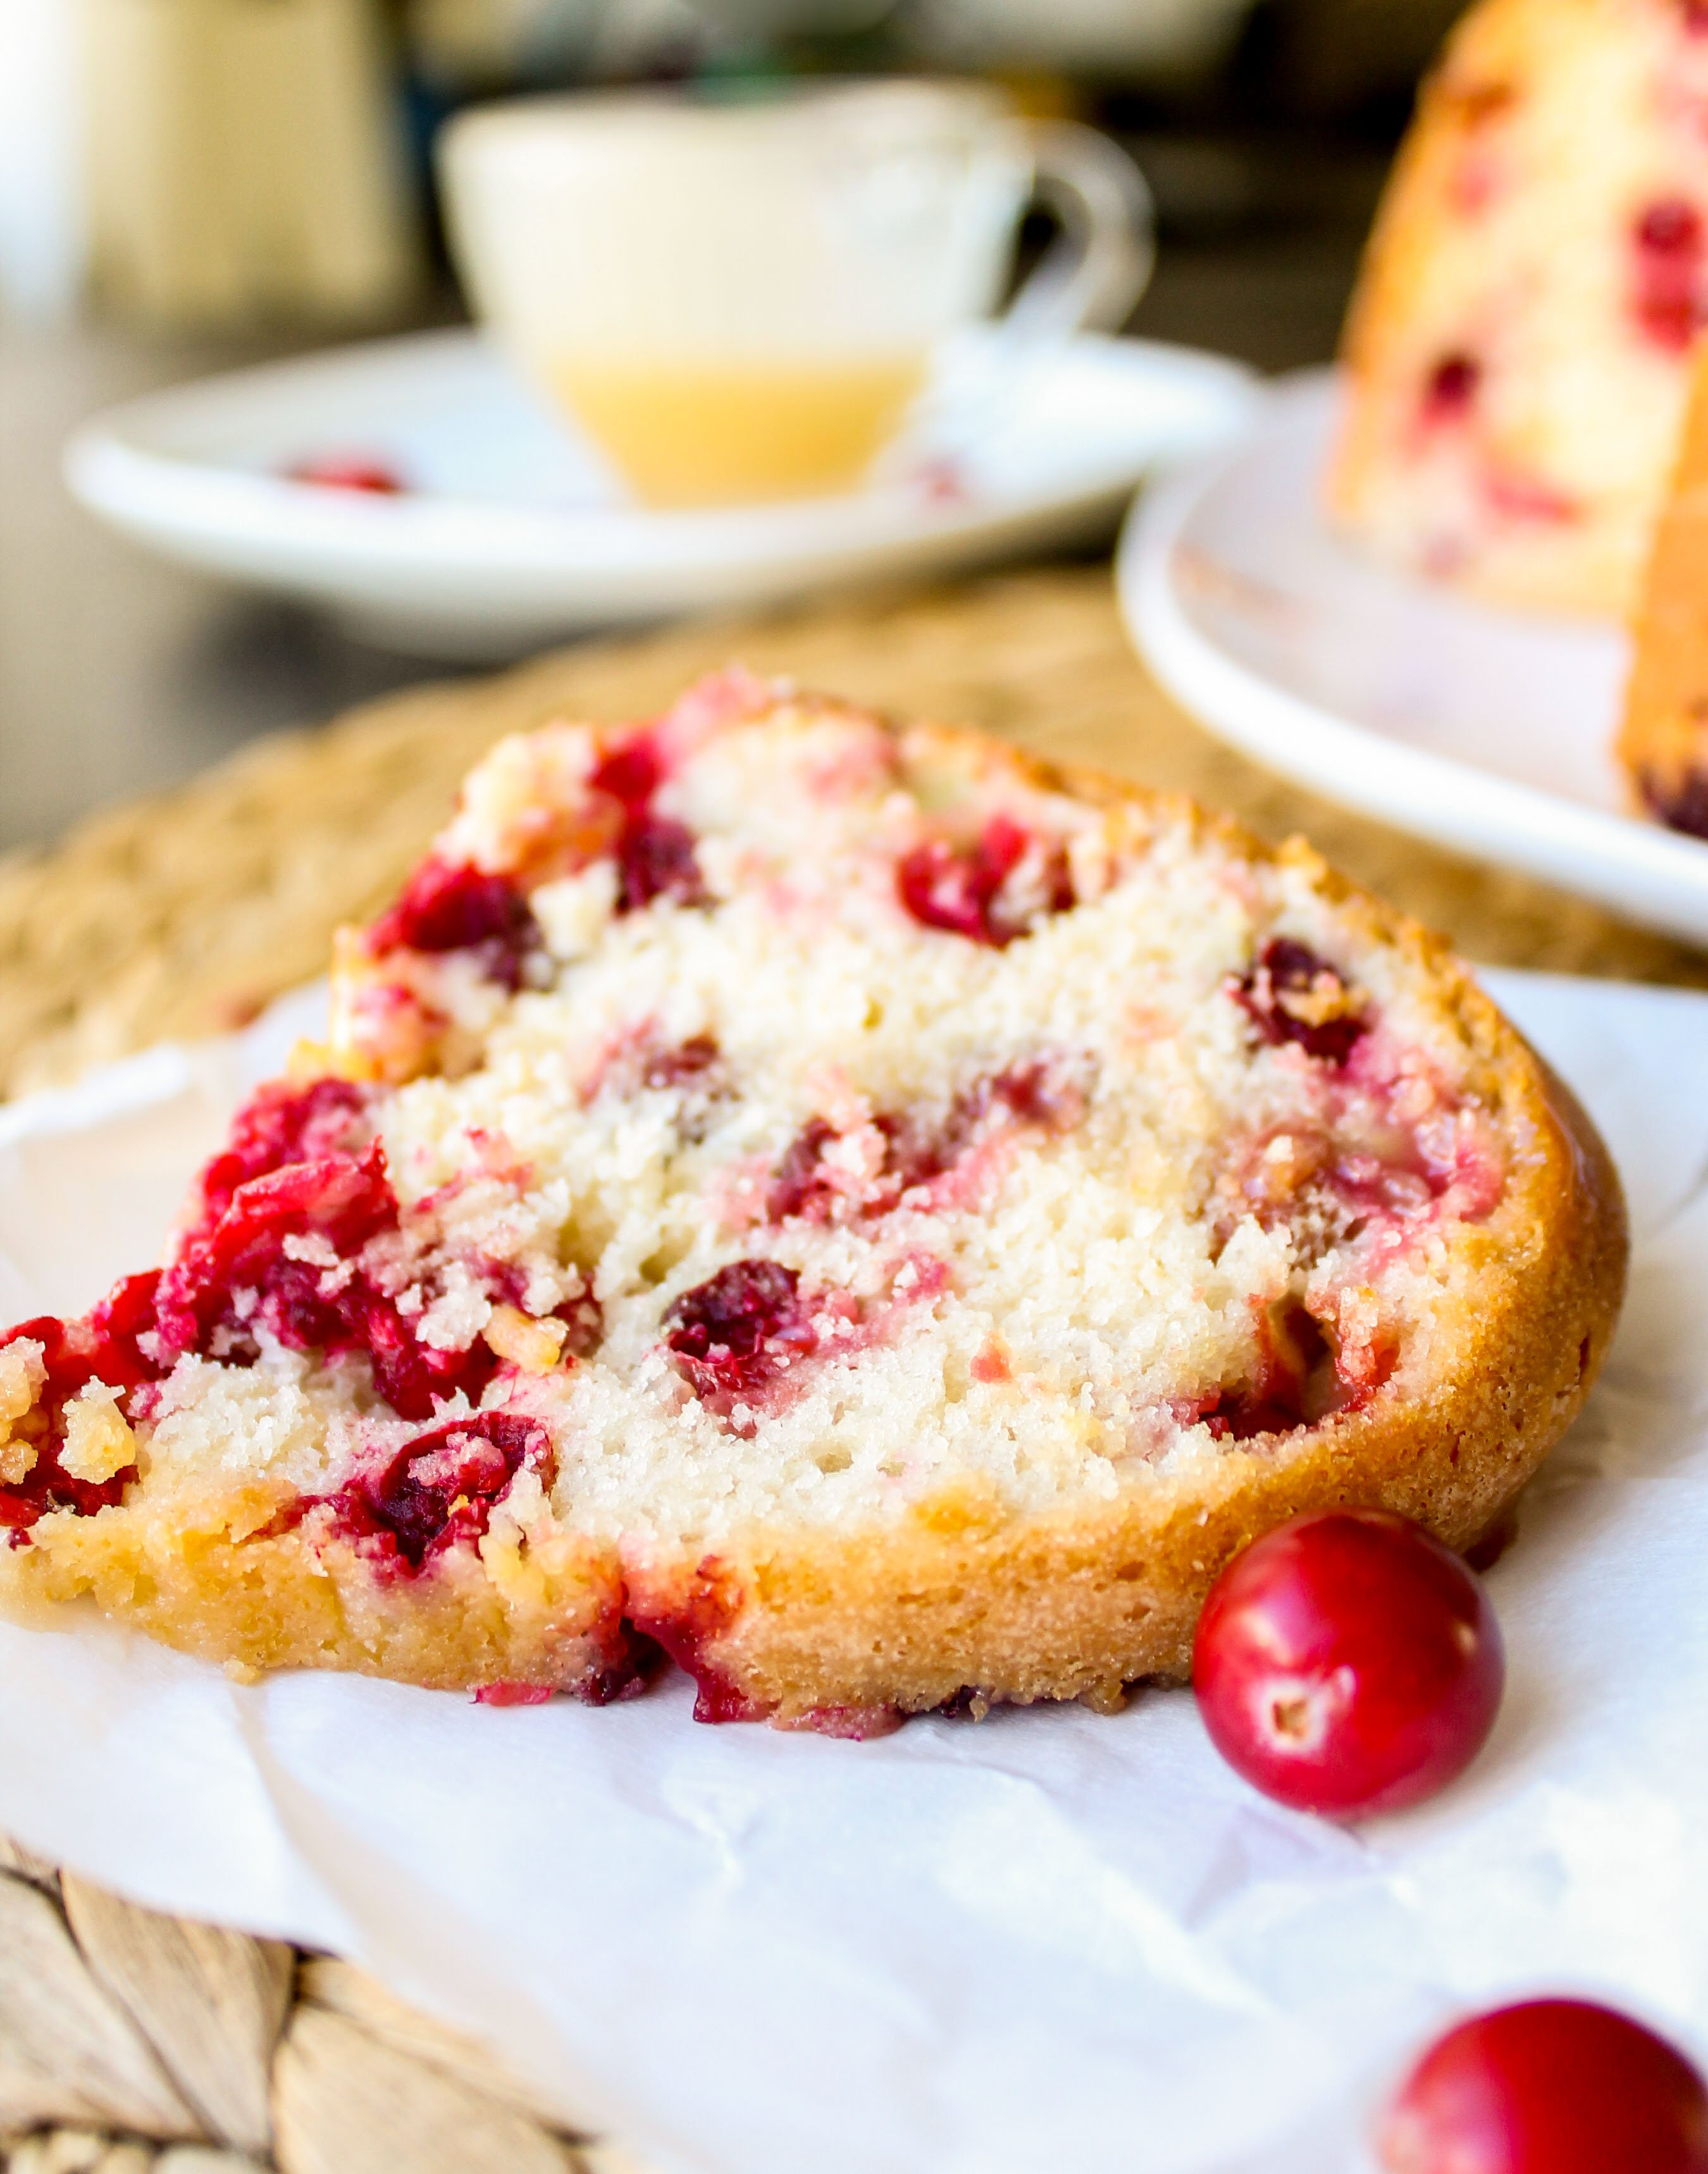 cake ultimate cranberry pudding ultimate cranberry pudding ultimate ...